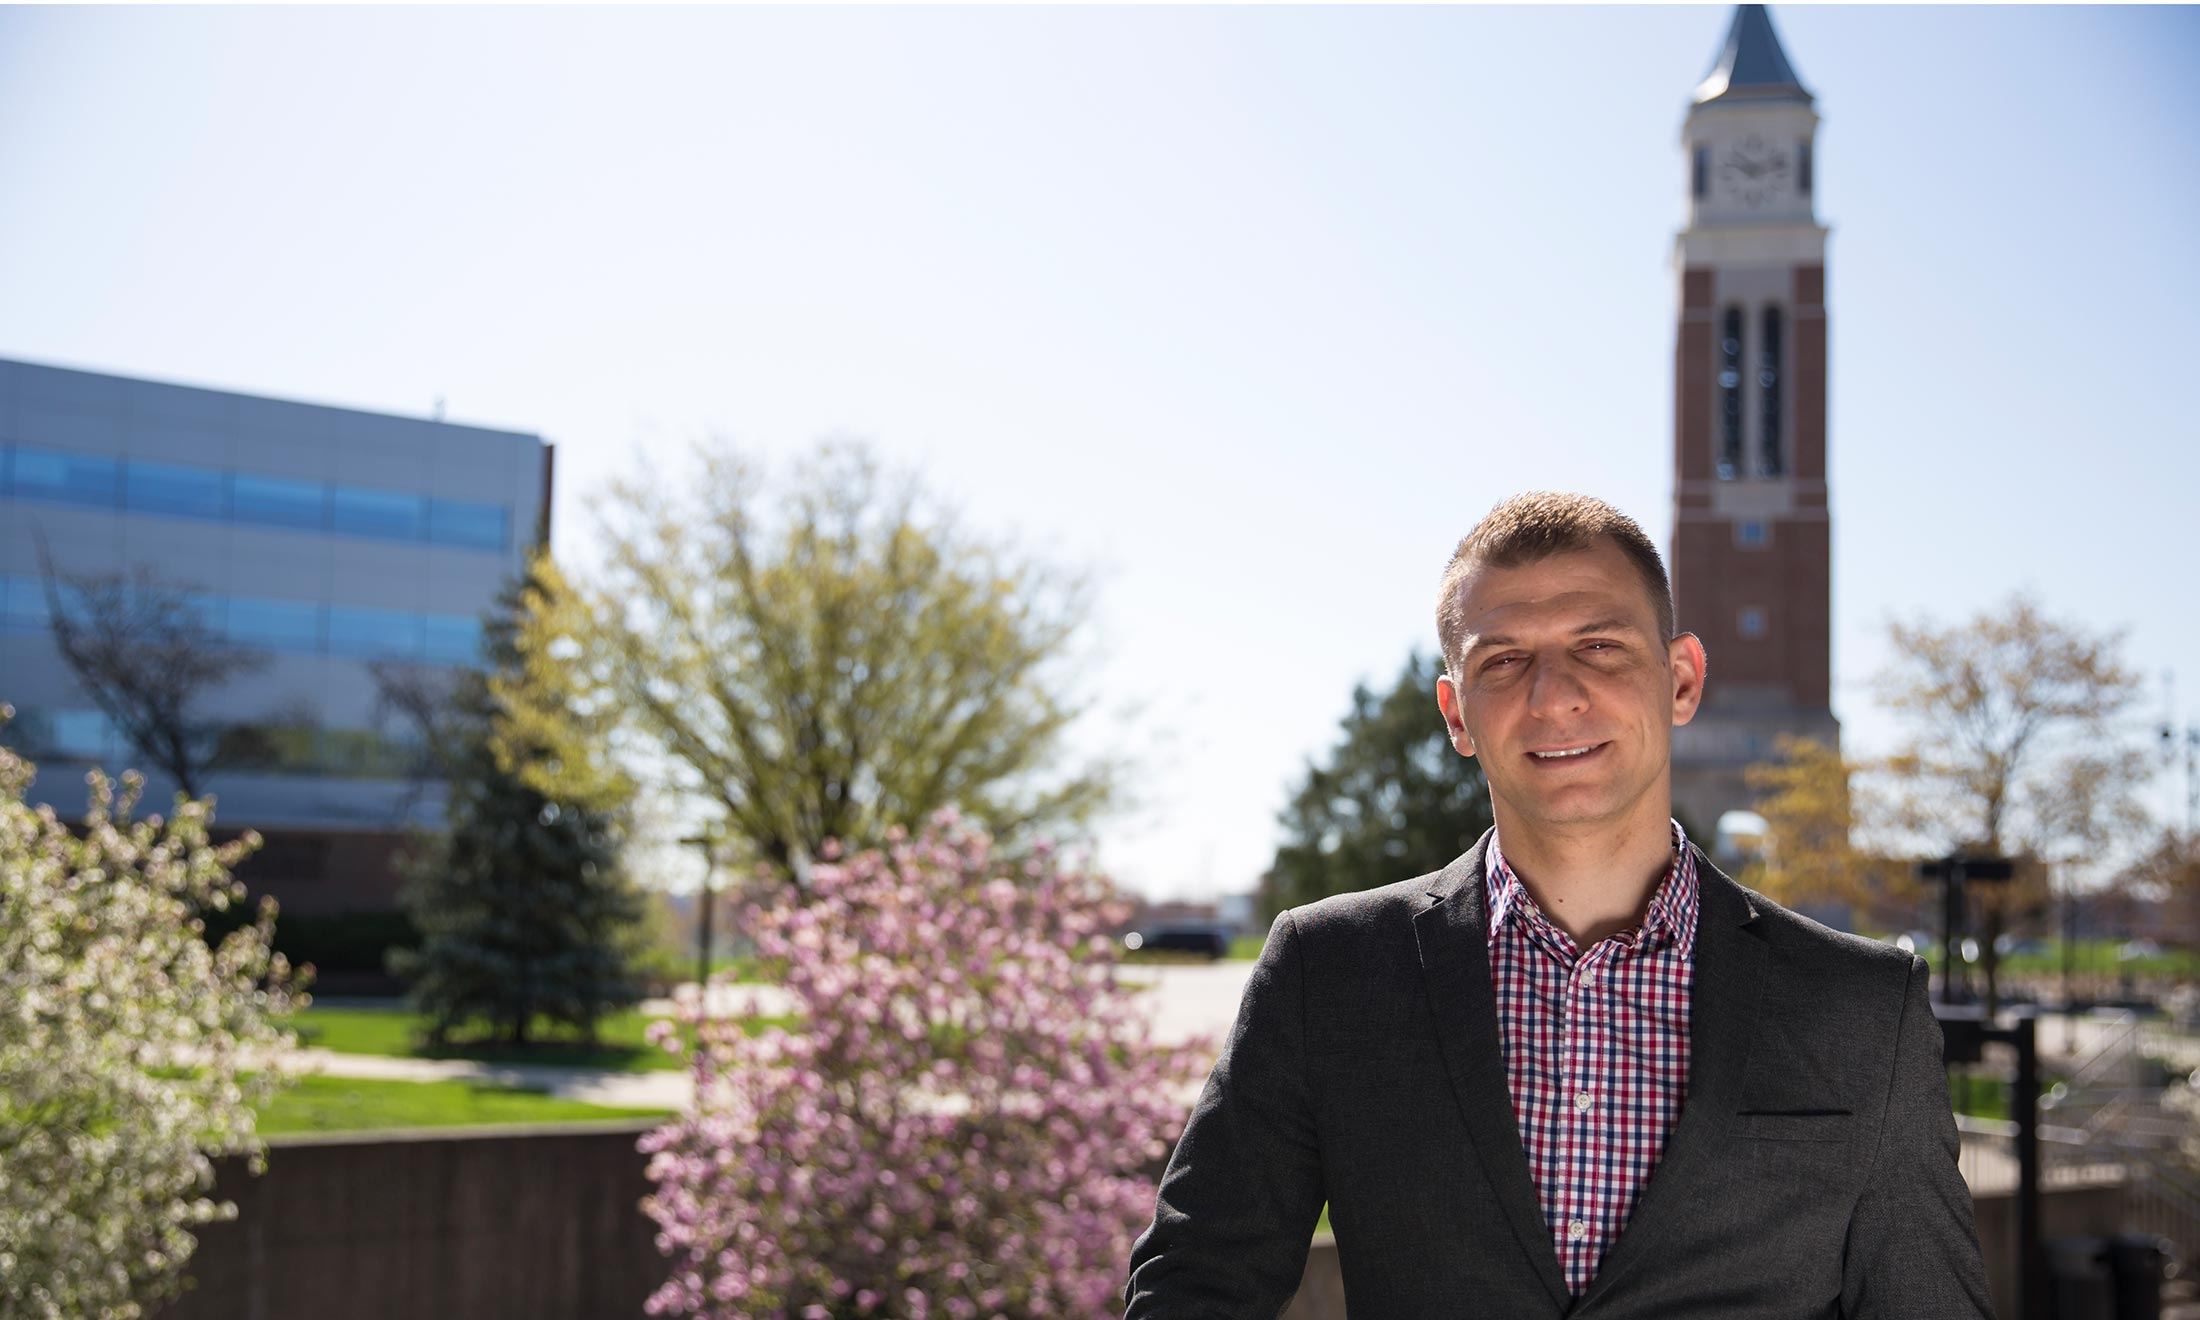 Oakland University graduate Sean Kosofsky poses for a photo during an afternoon on campus with Elliott Tower in the background